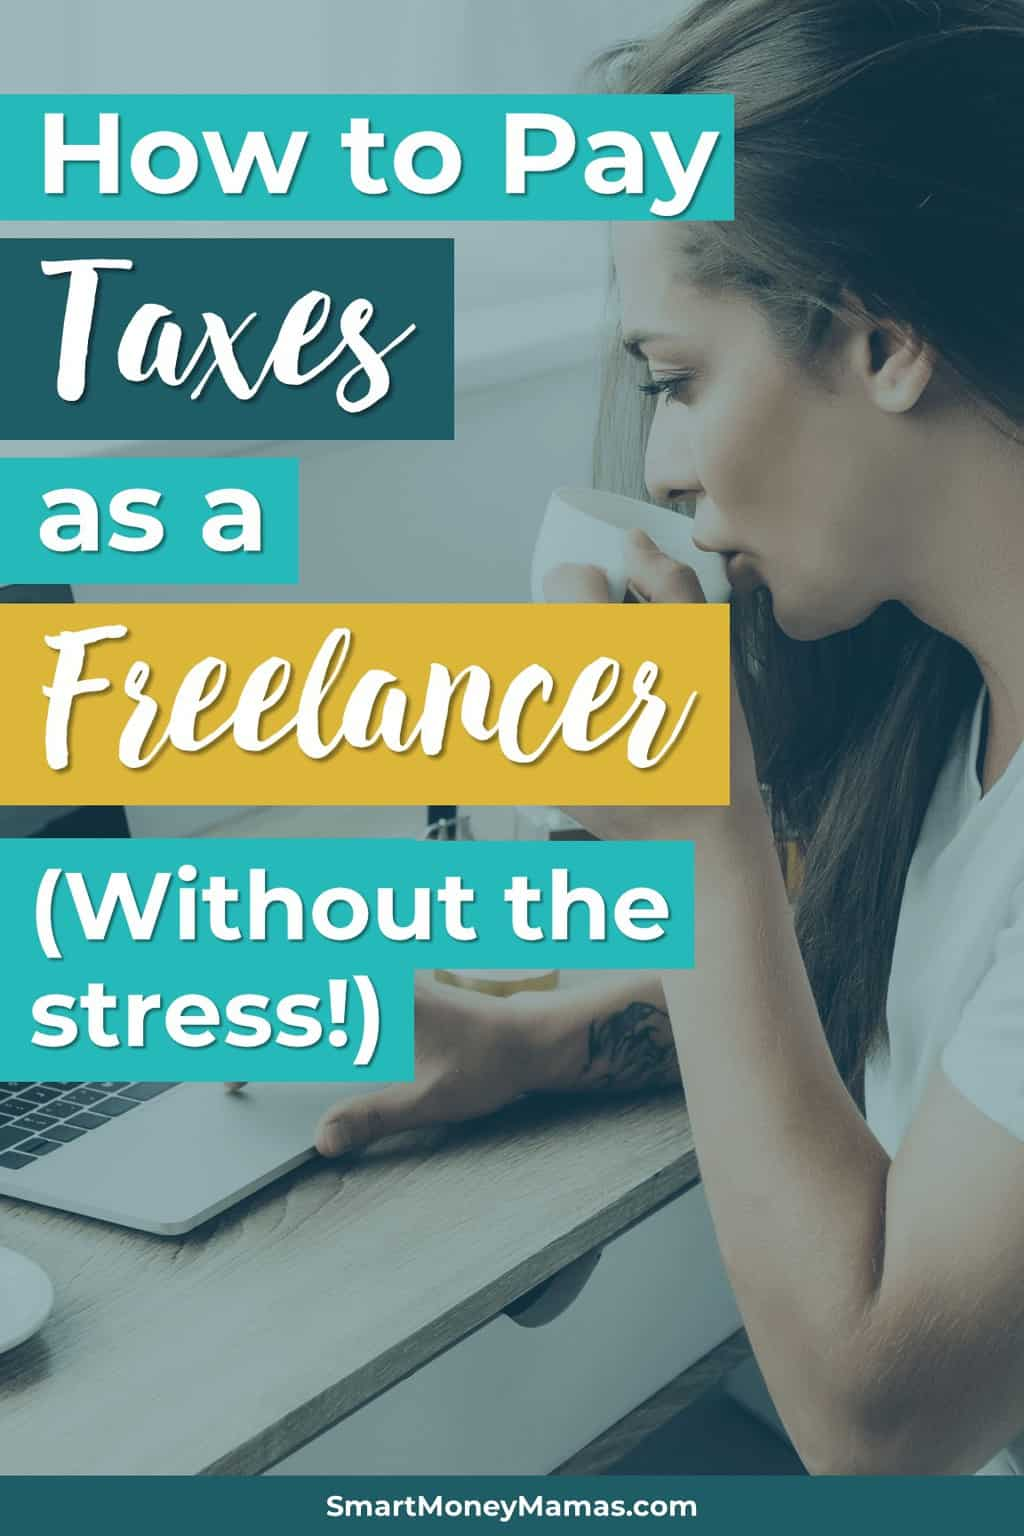 How to Pay Taxes as a Freelancer (Without the stress!)